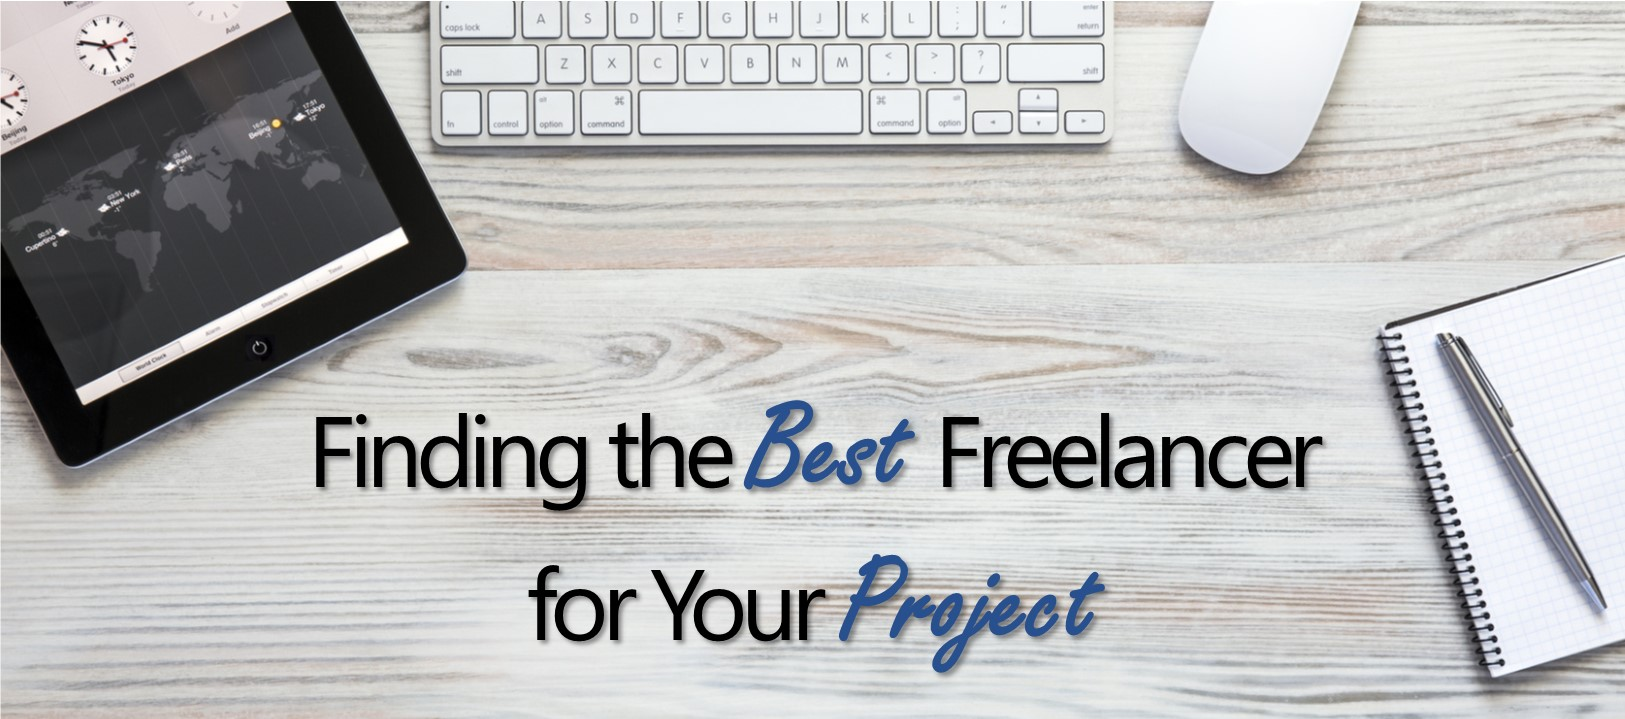 Finding the Best Freelancer for Your Project